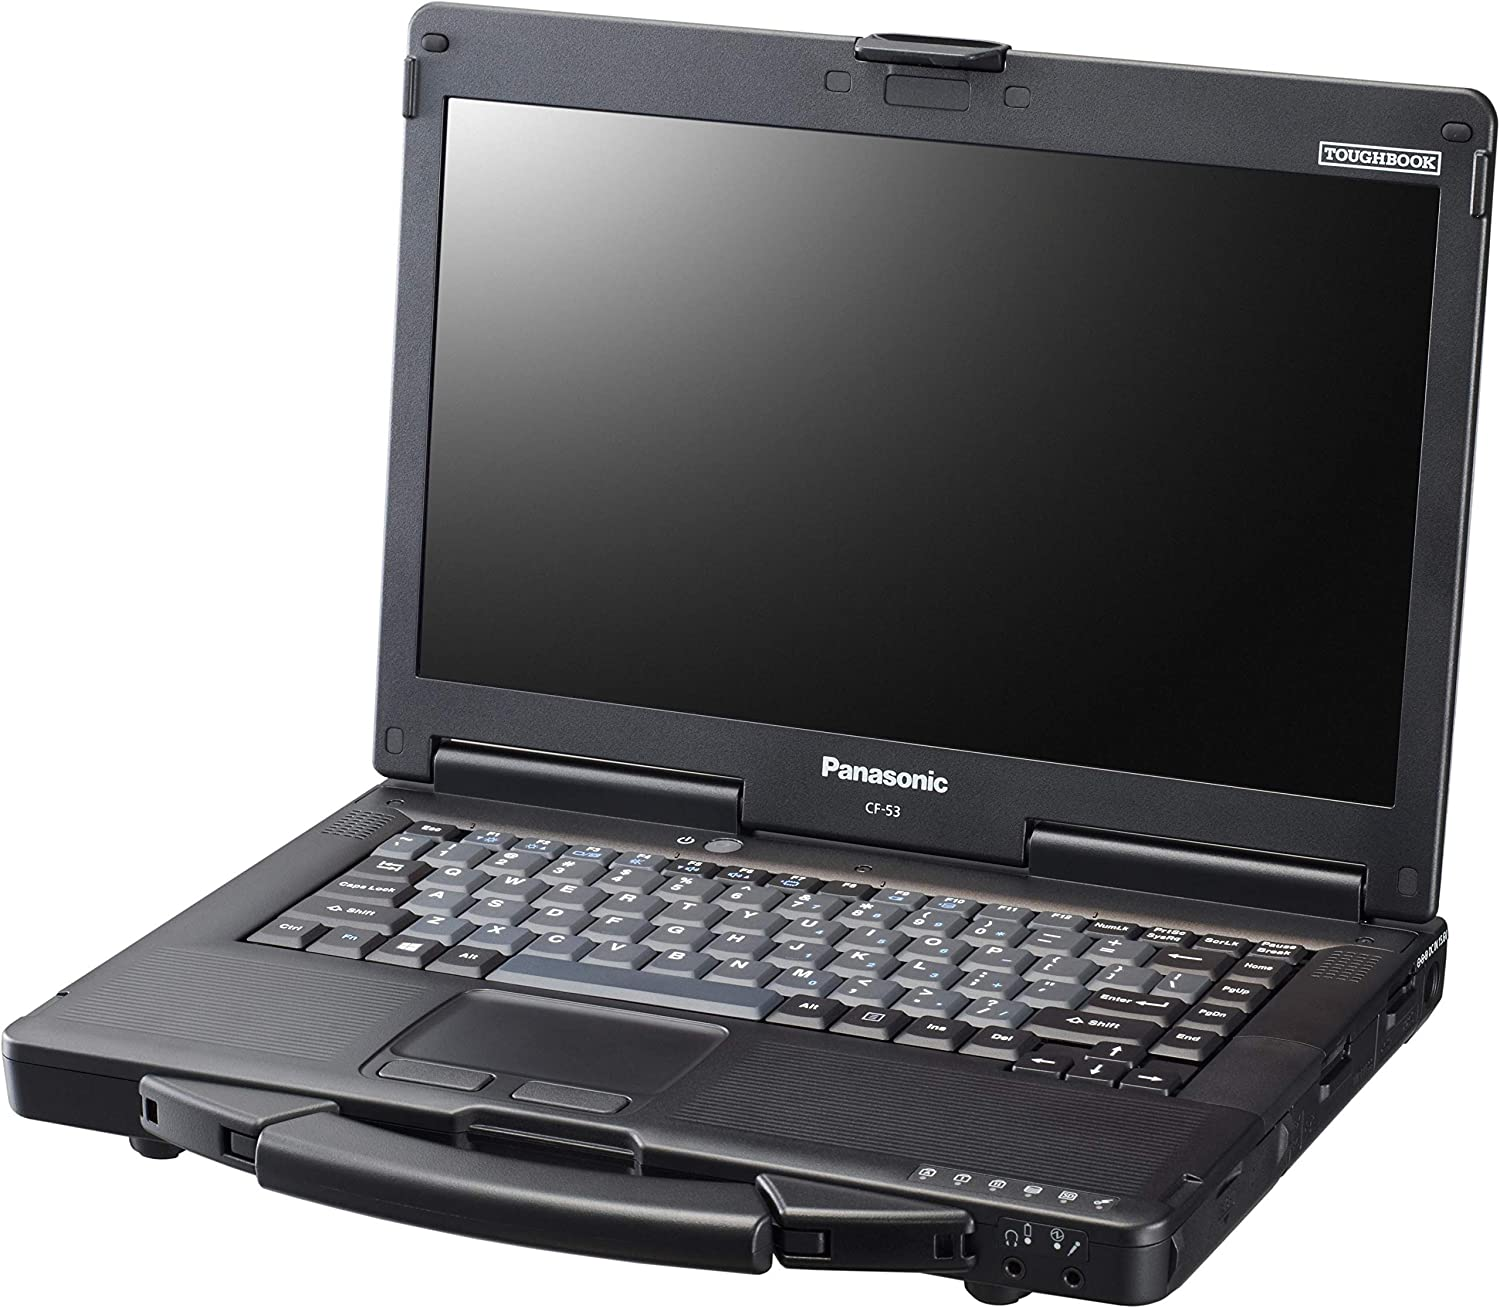 "Panasonic Toughbook CF-53 MK4, i5-4310M @2.00GHz, 14"" HD Touchscreen, 8GB, 480GB SSD, Windows 10 Pro, WiFi, Bluetooth, DVD (Renewed)"